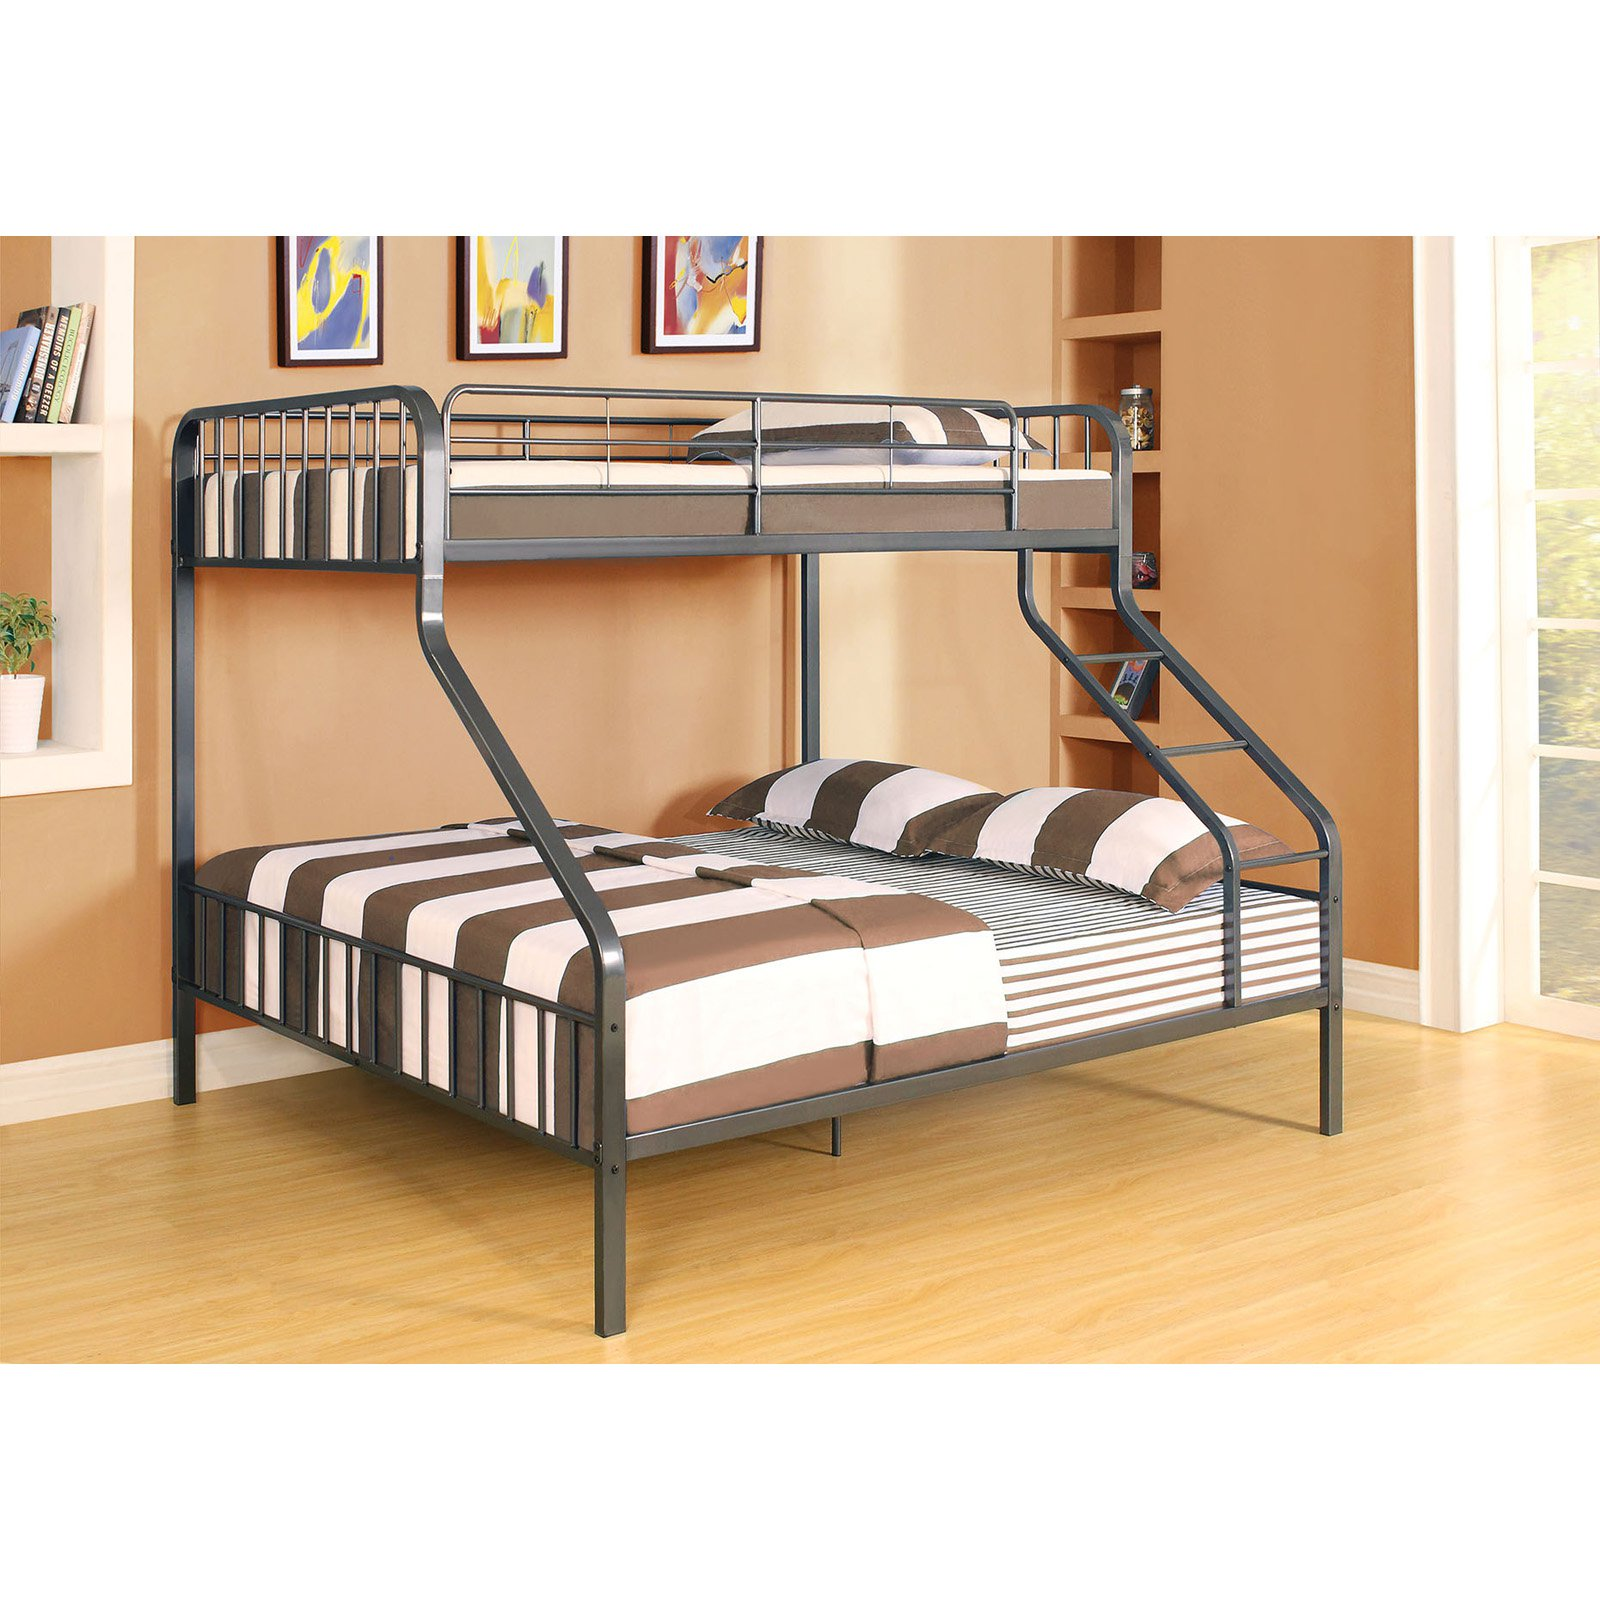 Caius Twin/Queen Bunk Bed, Gunmetal, Box 2 of 2